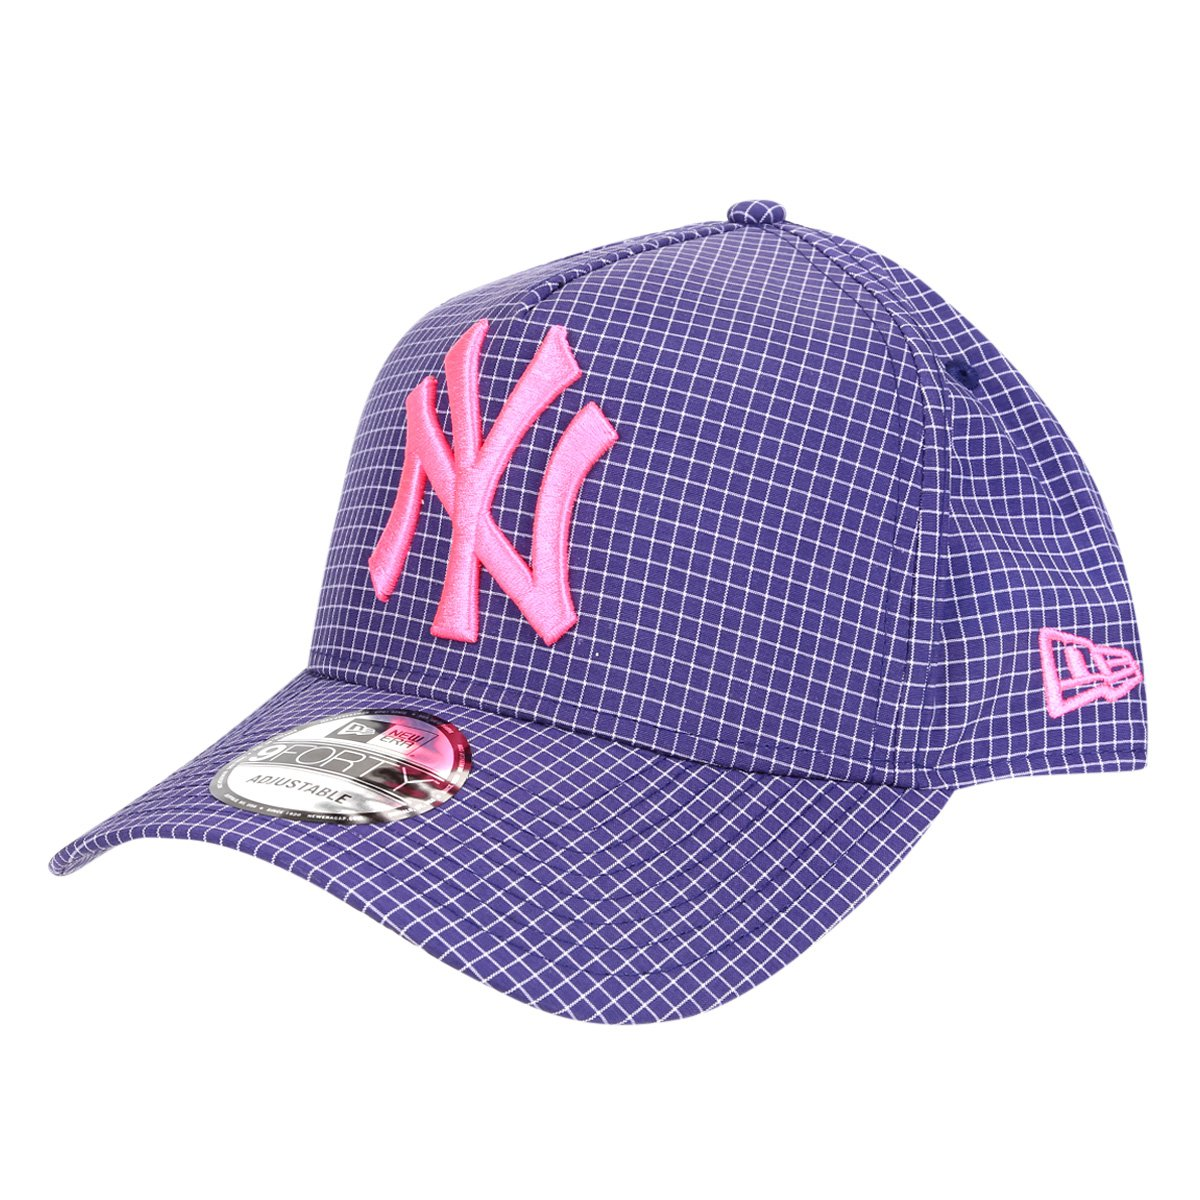 Boné New Era MLB New York Yankees Aba Curva Snapback Space Plaid 9Forty